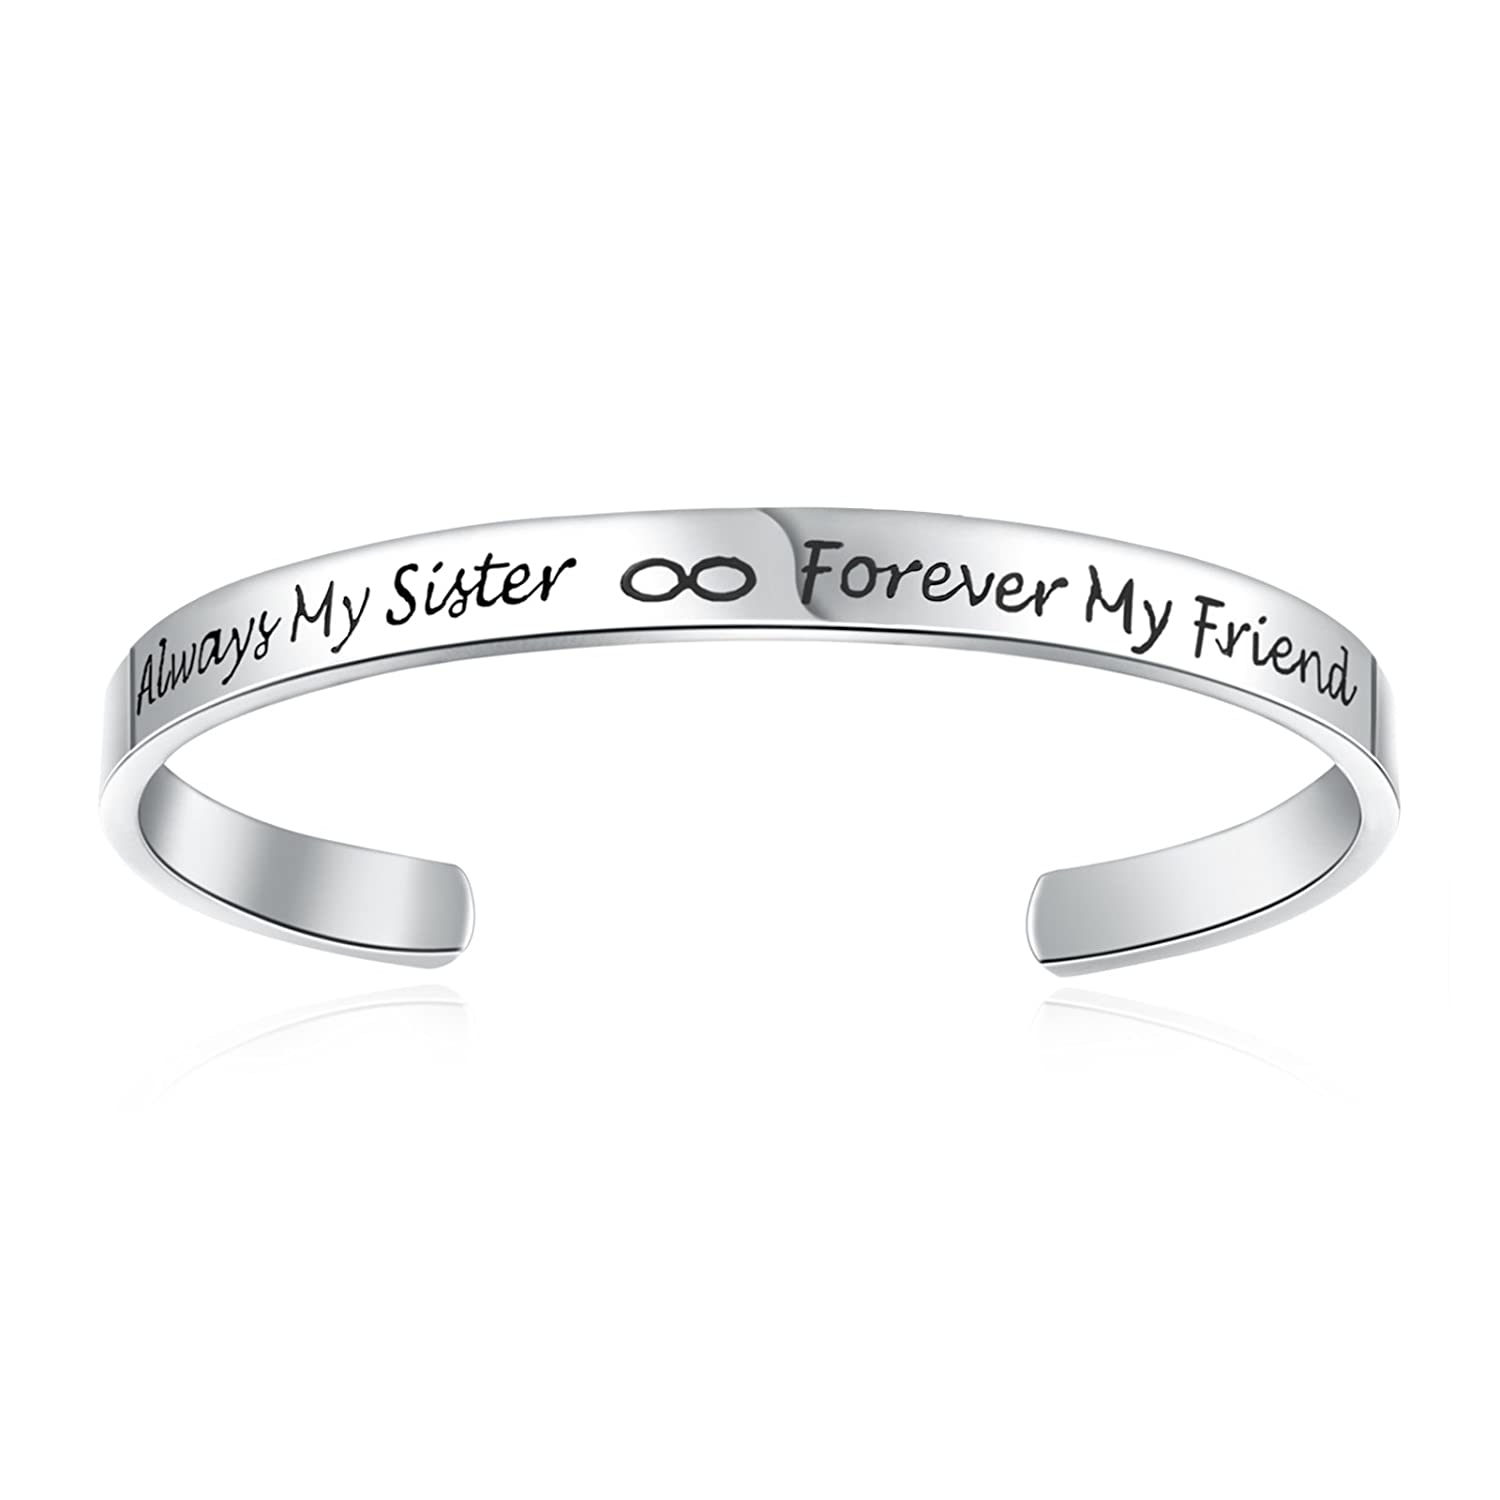 Cuff Bangle Bracelet Engraved Always My Sister Forever My Friend Jewelry Gift for Sister Anna Crystal Jewelry B075GKG4QW_US